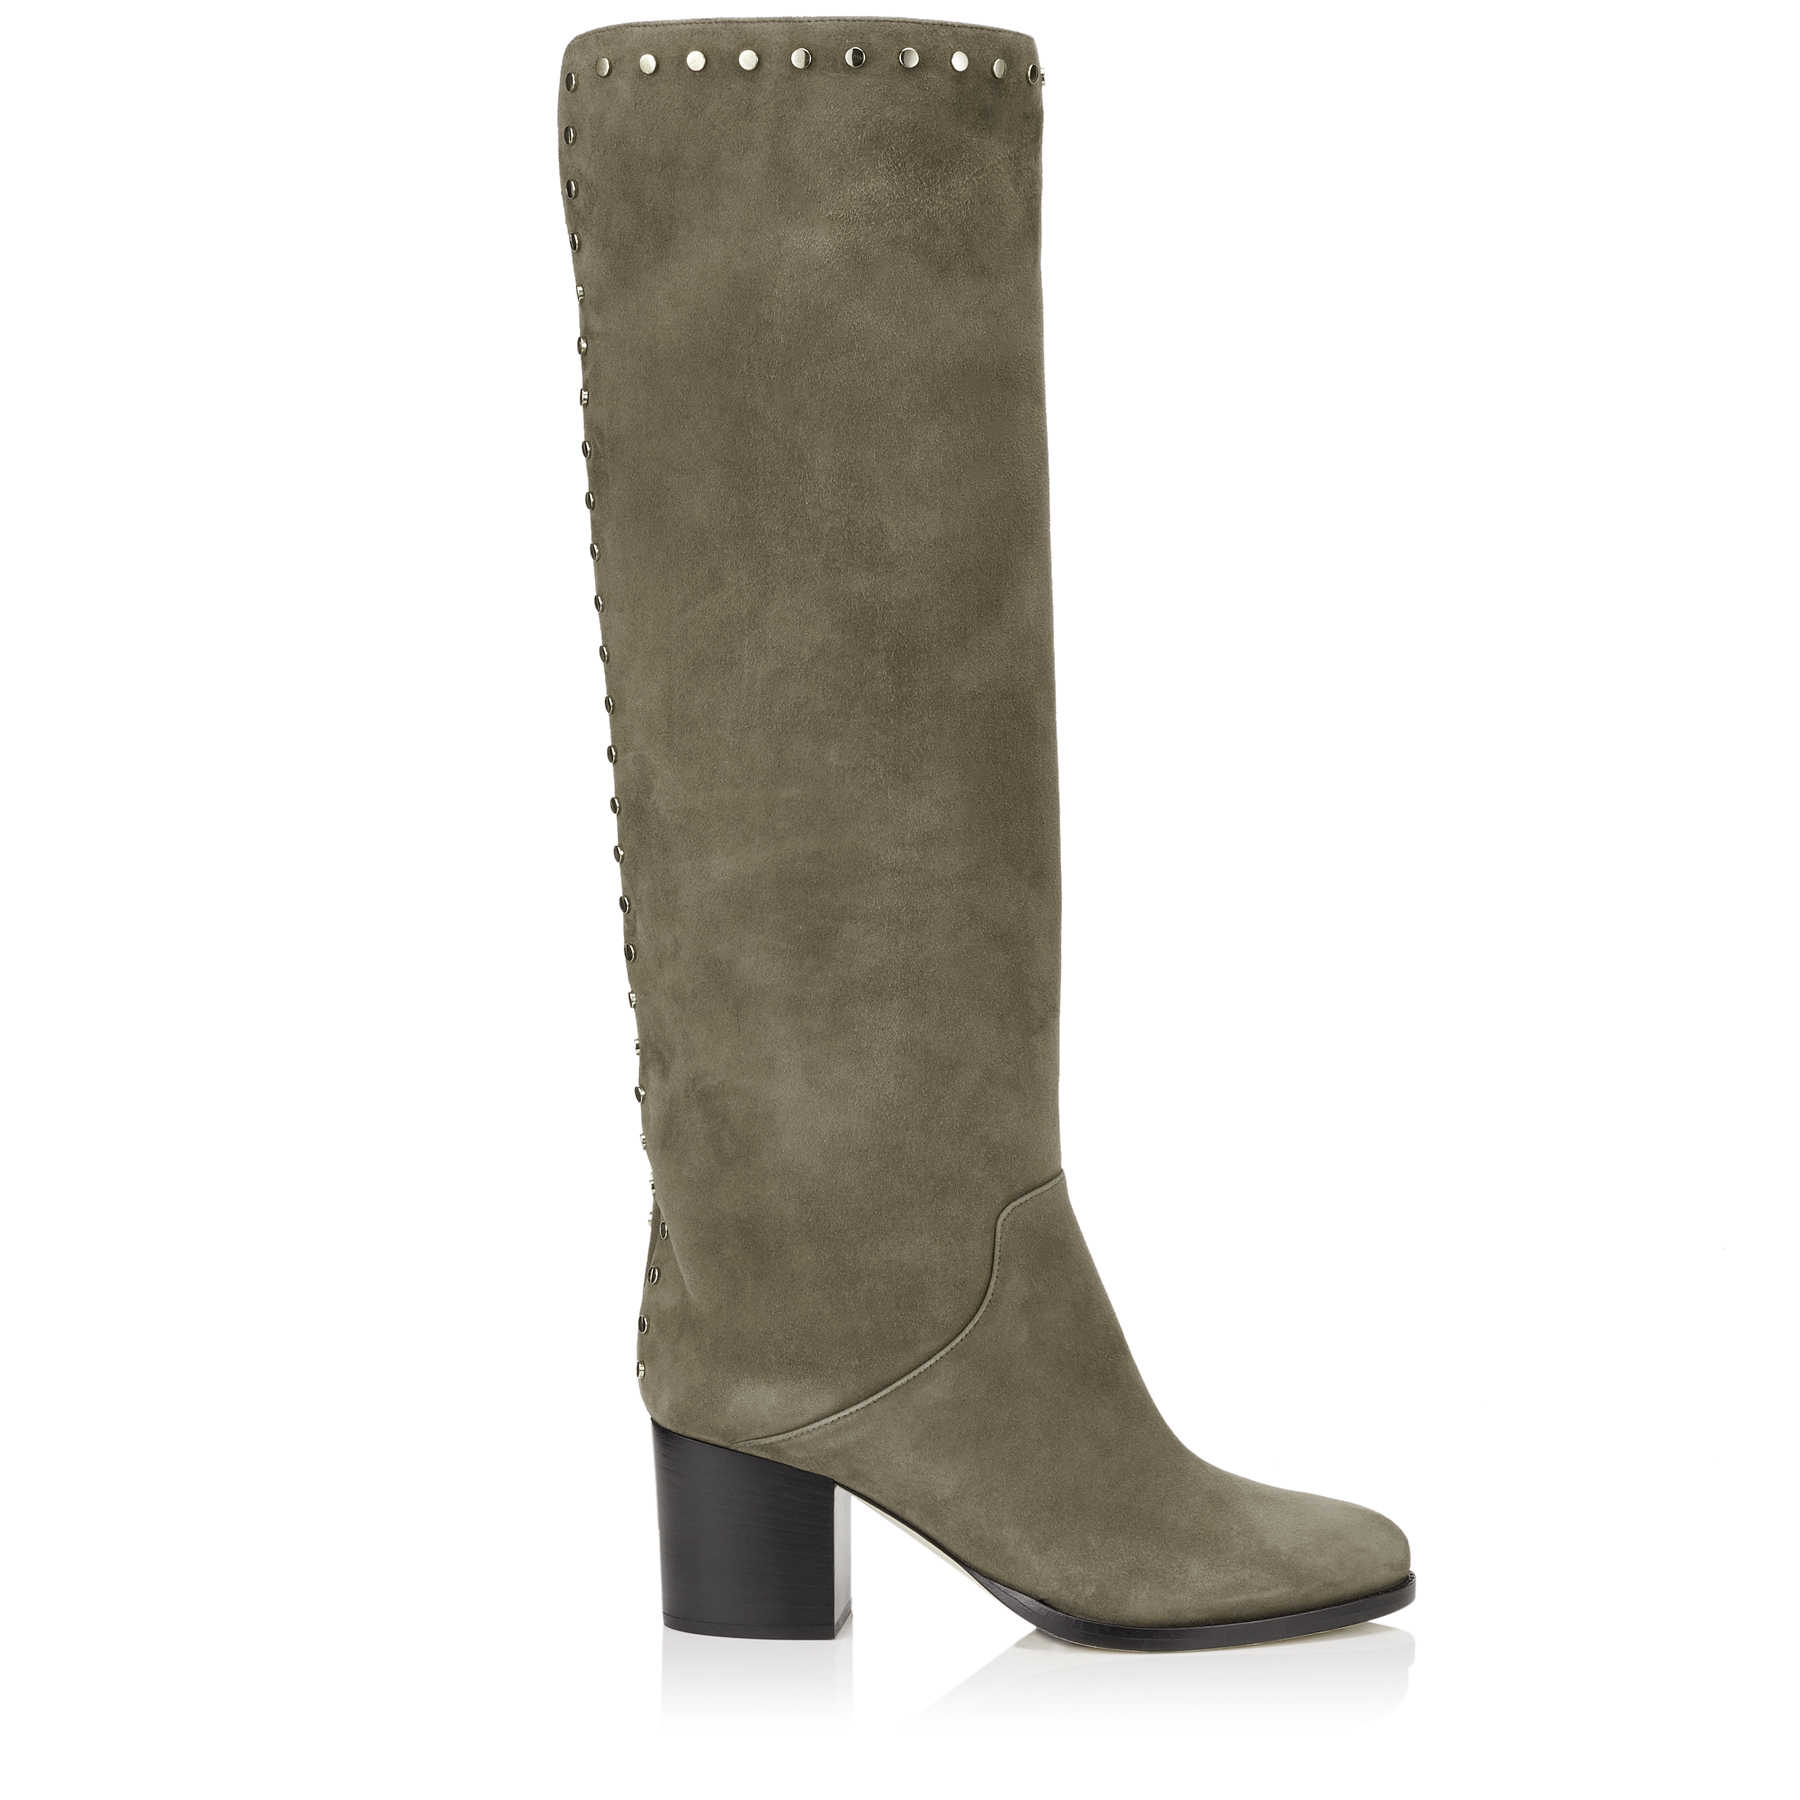 MONROE 65 Mink Suede Knee High Boots with Studded Trim by Jimmy Choo